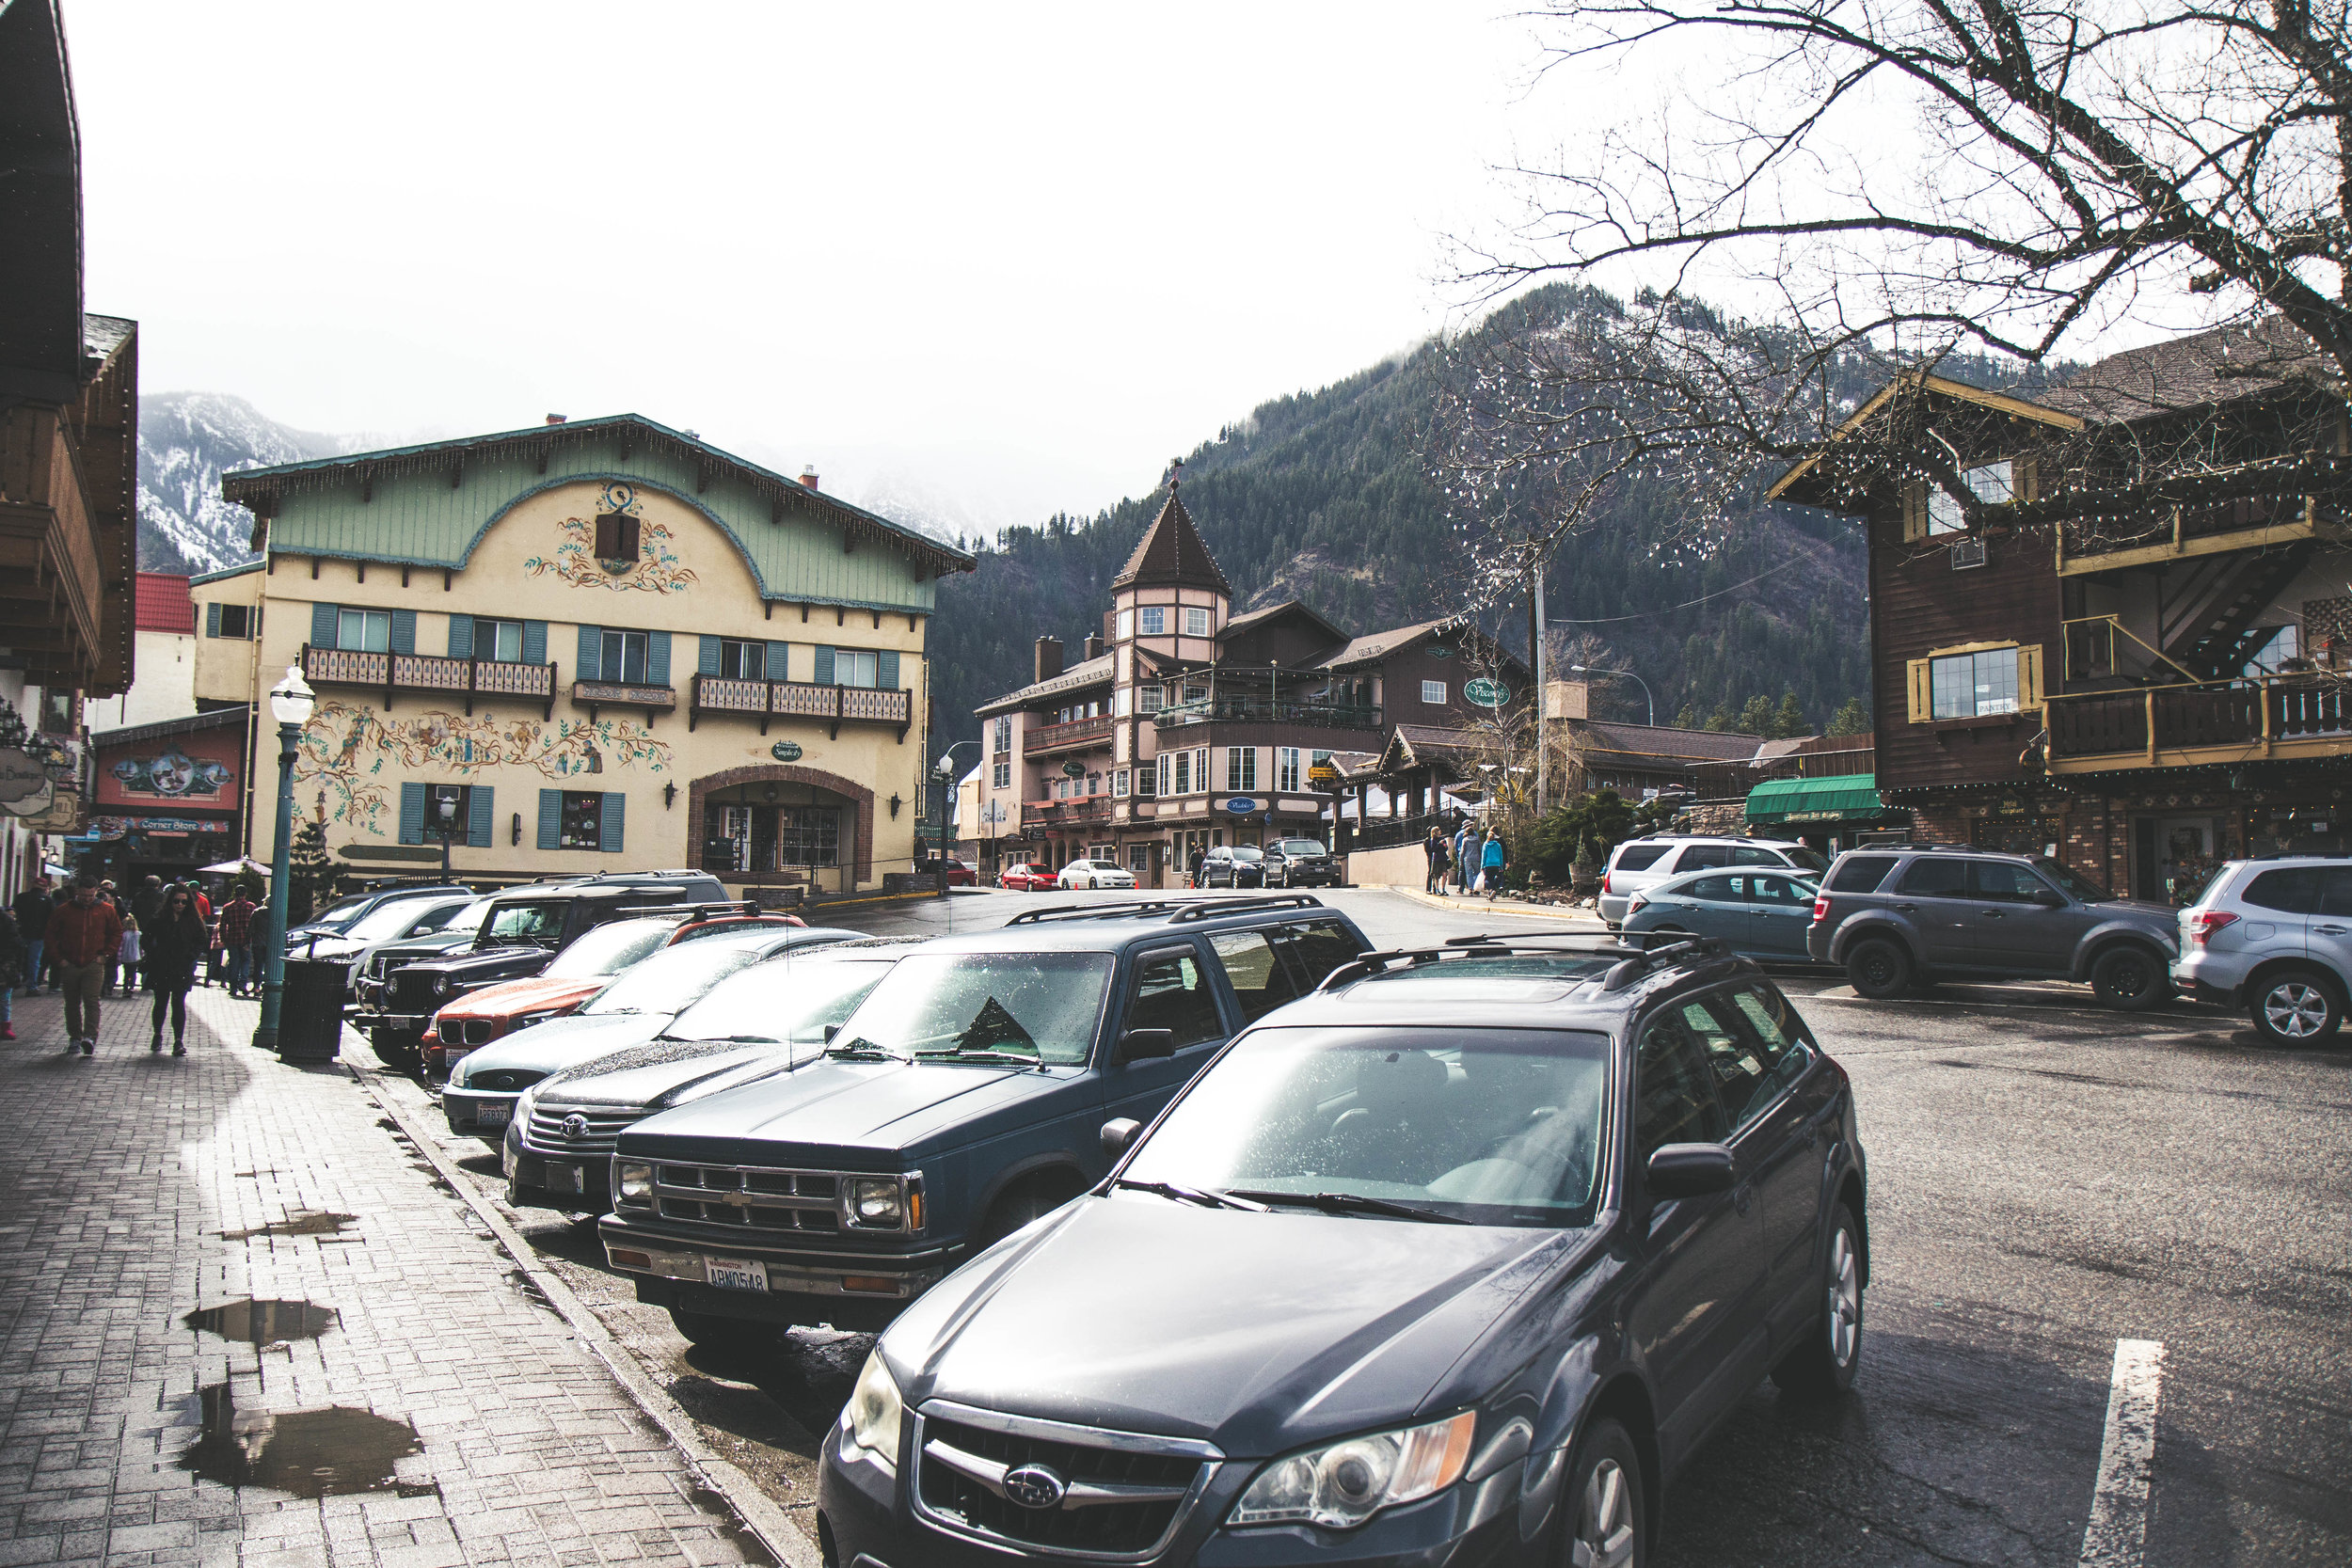 A Bavarian Village in Washington Leavenworth is a must visit for amazing shops, beer, wine, and traditional Bavarian food.